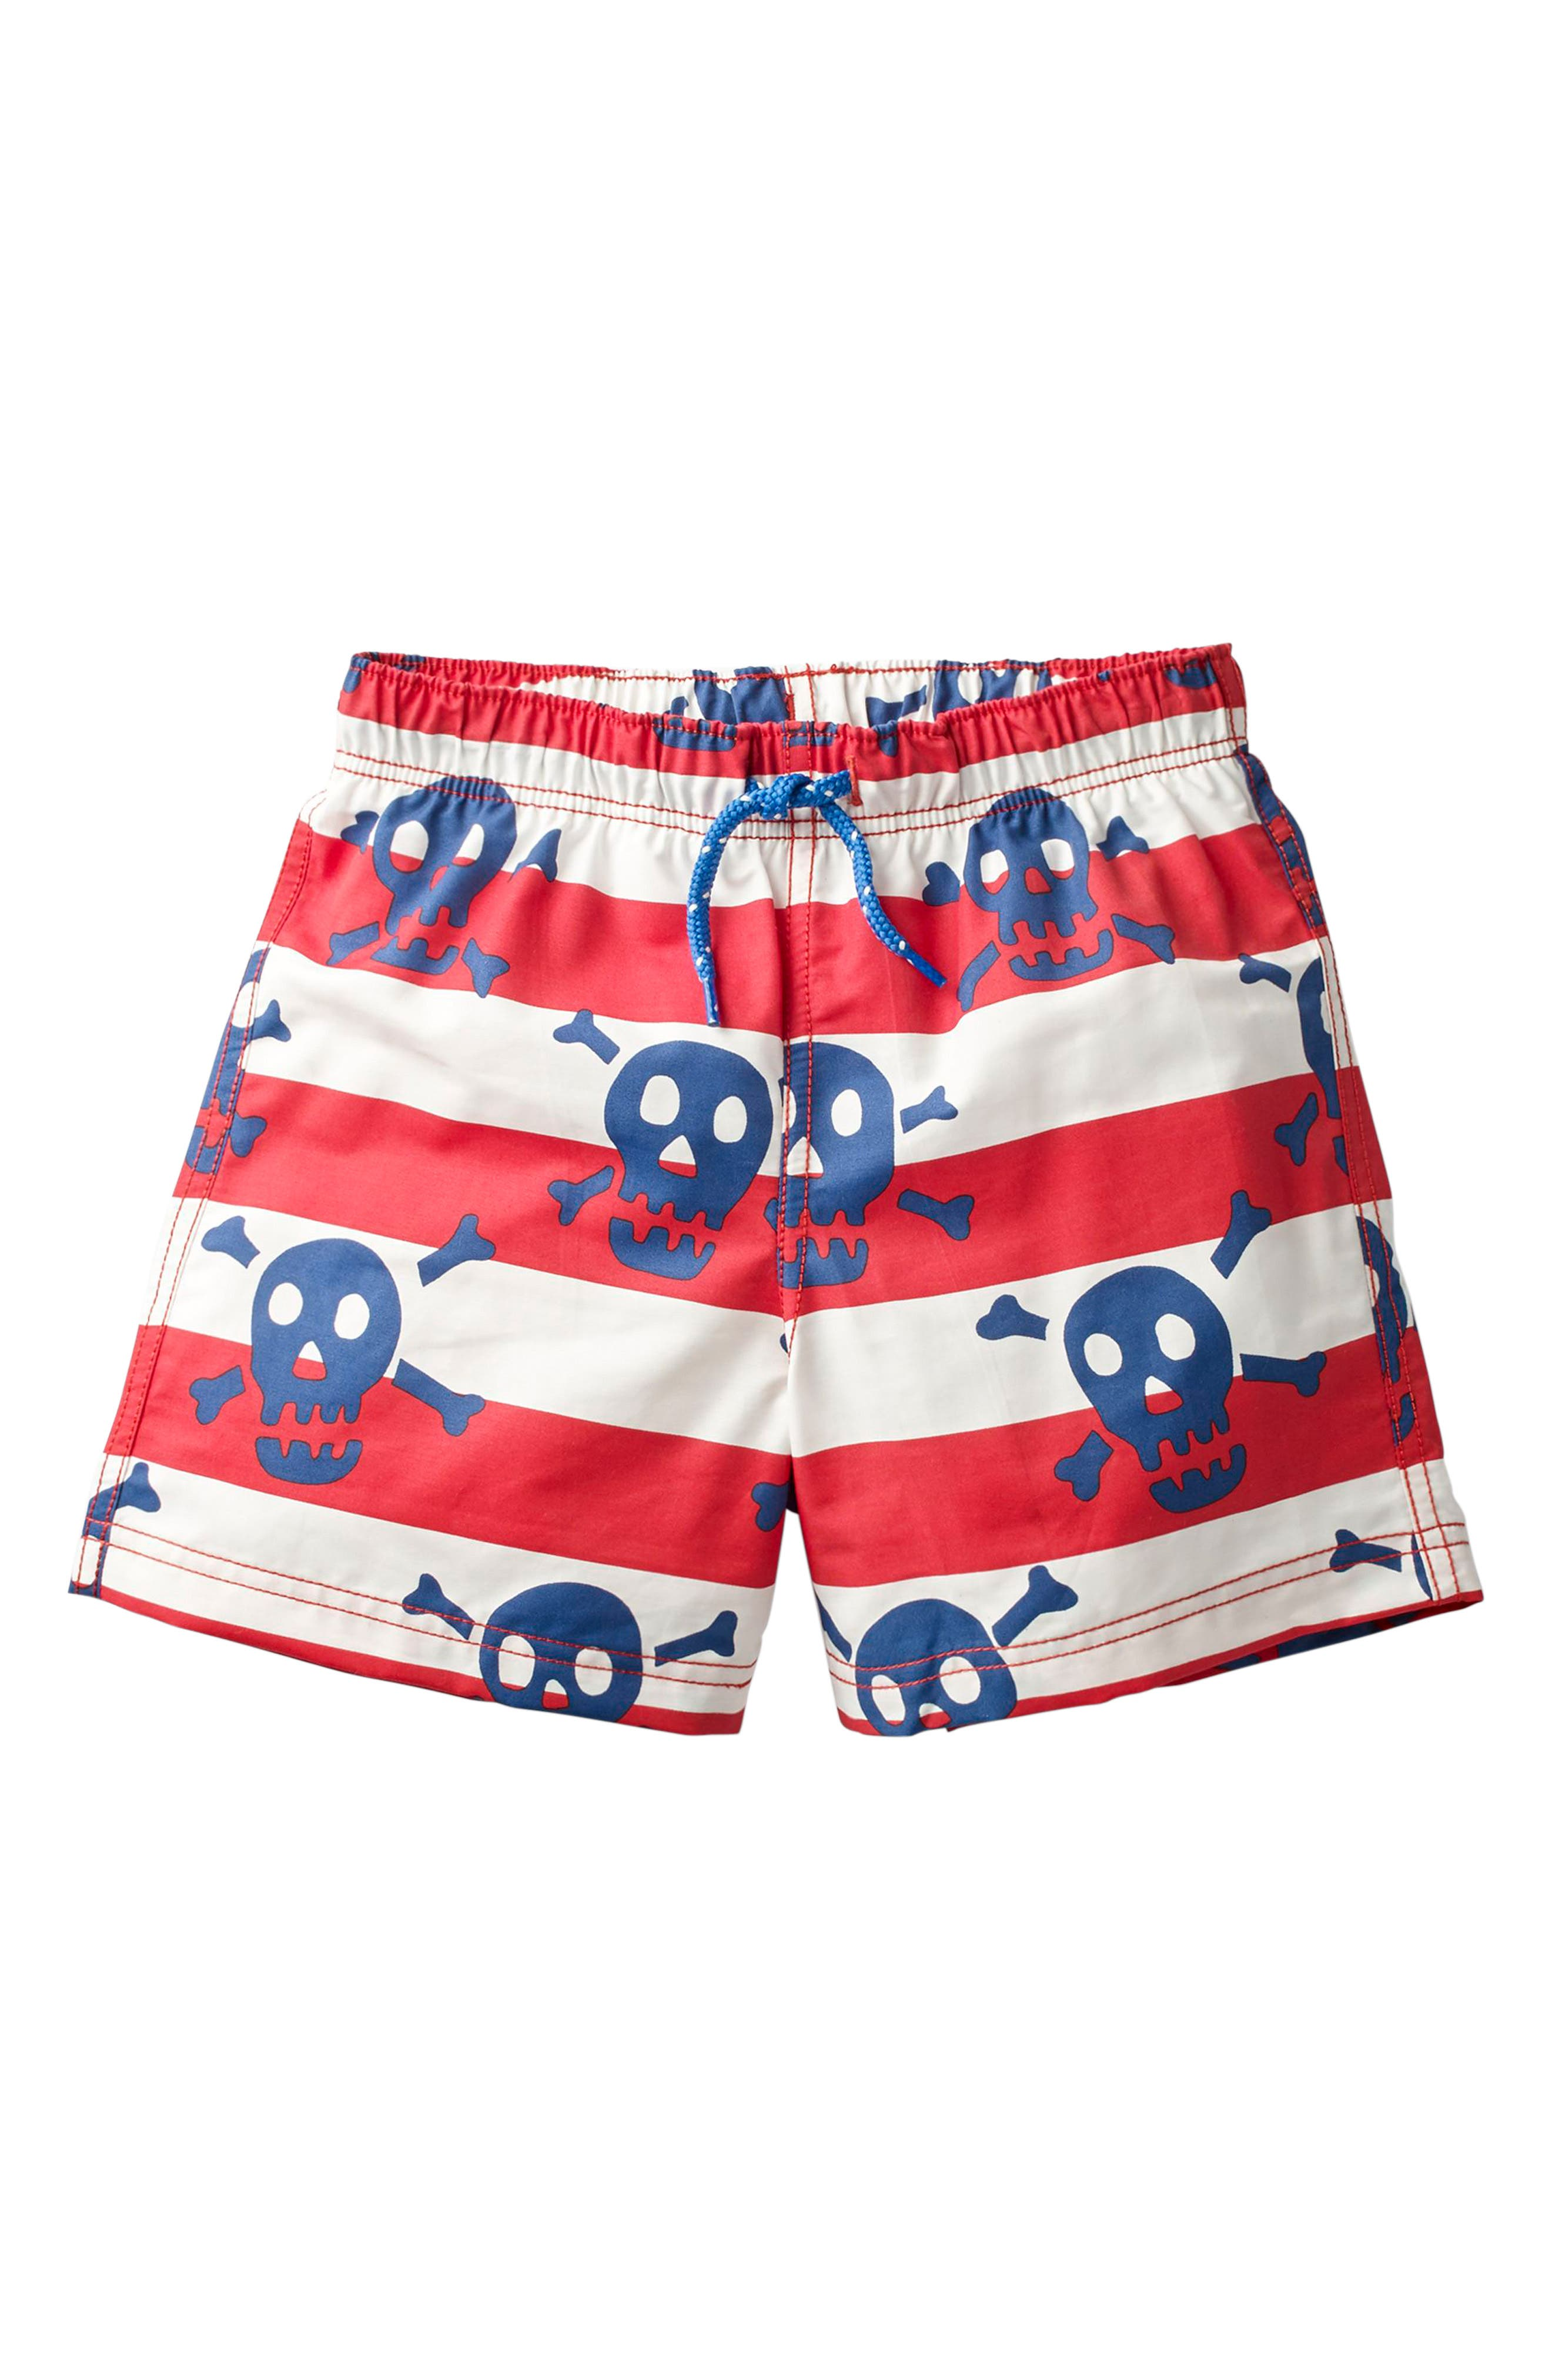 Bathers Skulls Swim Trunks,                         Main,                         color, 614